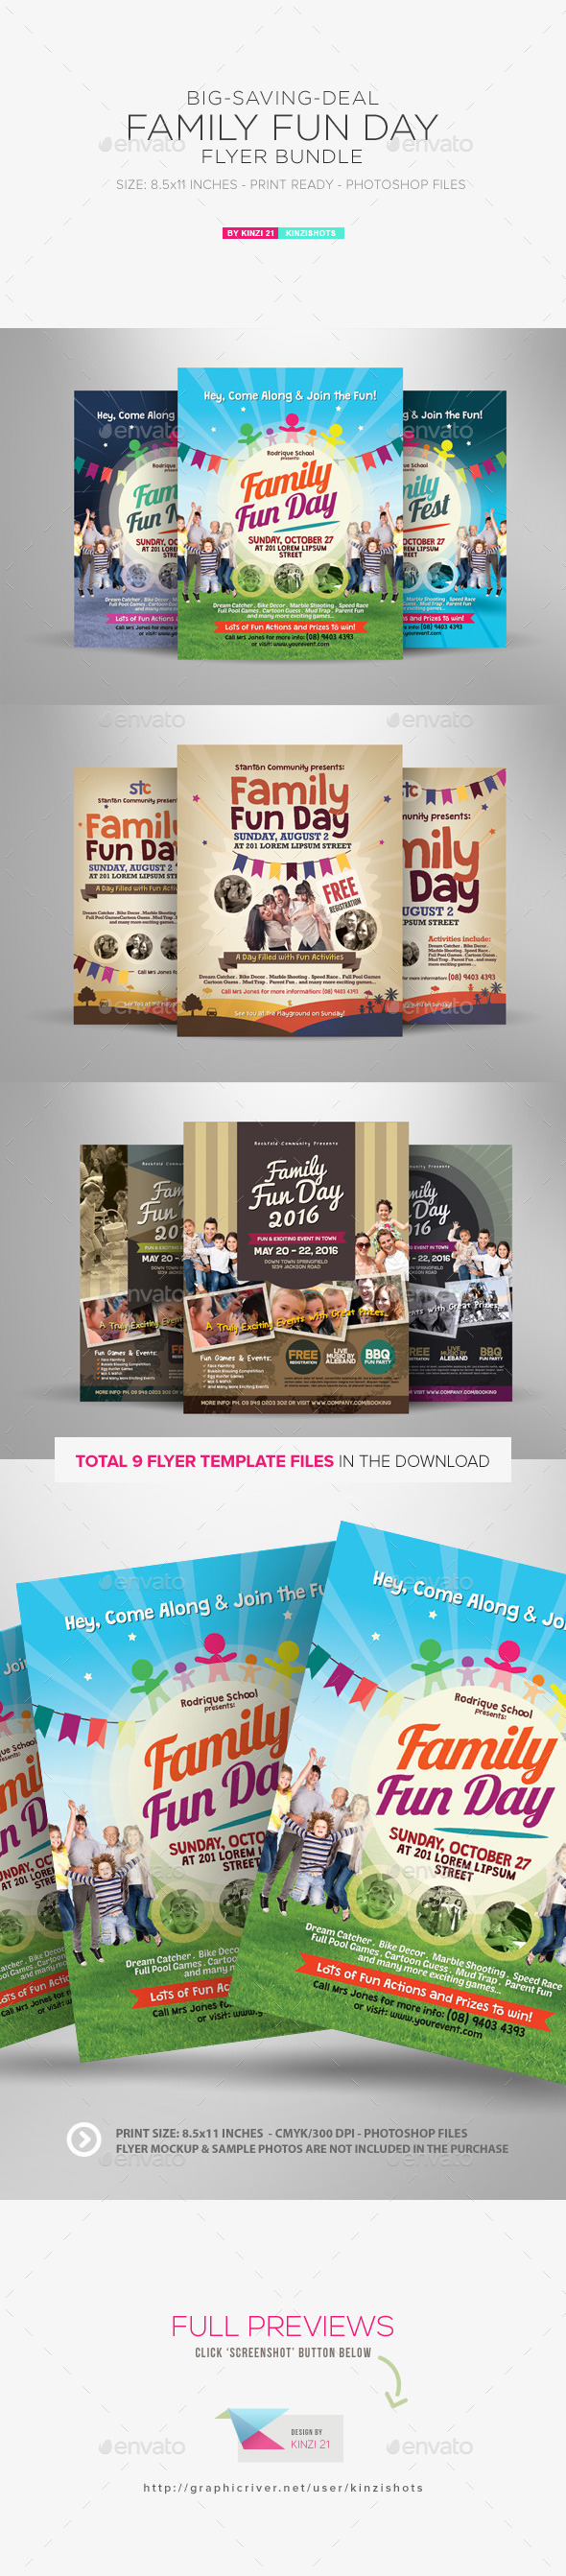 print template graphicriver family fun day flyer bundle 11934321. Black Bedroom Furniture Sets. Home Design Ideas